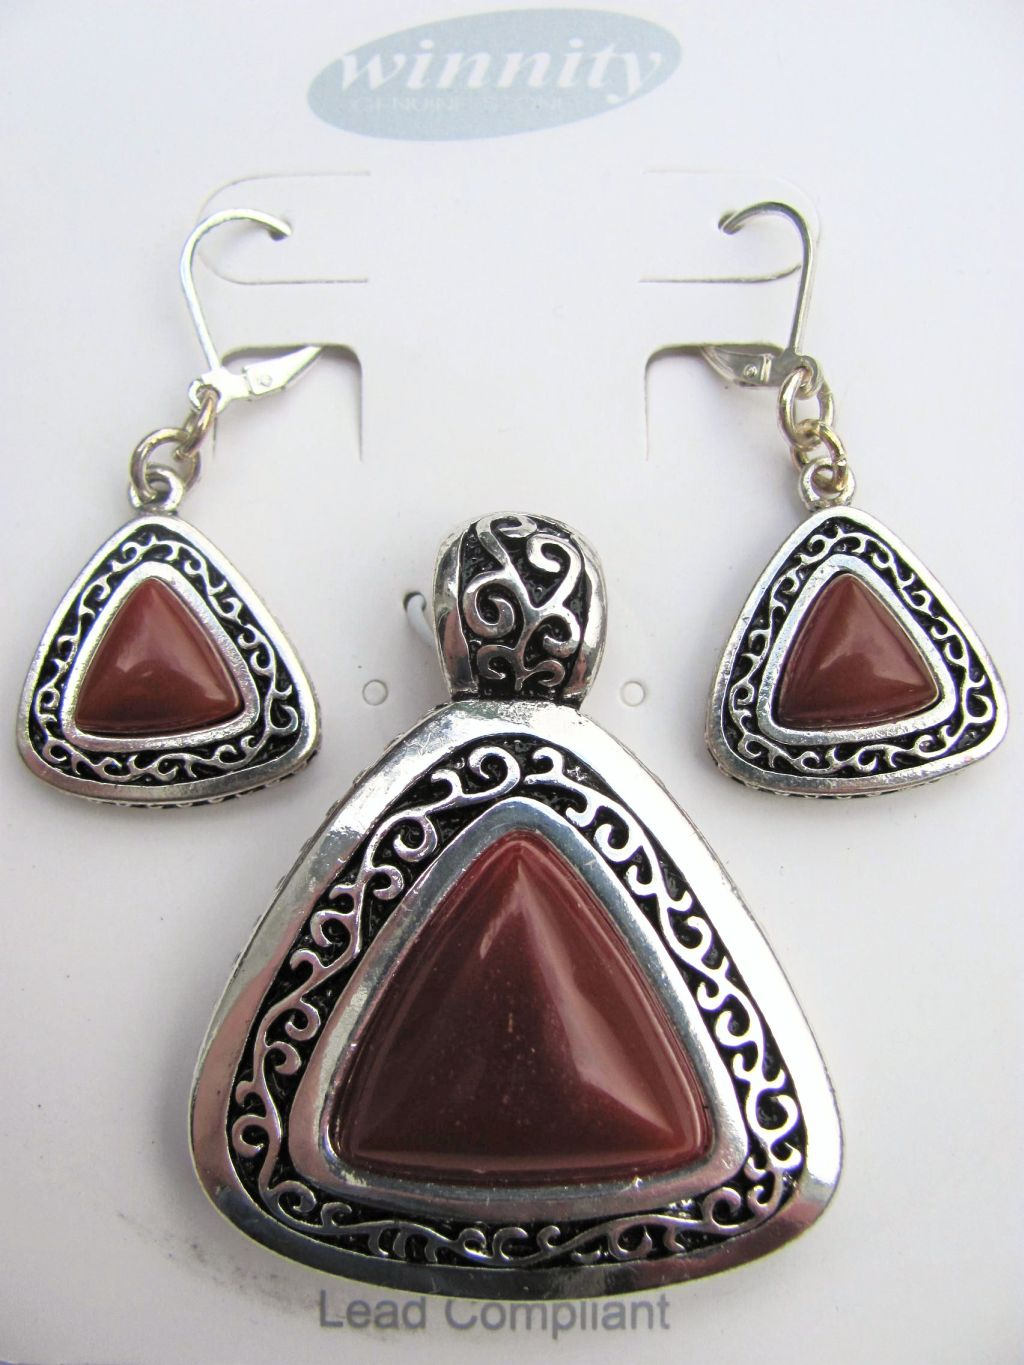 Cornelian Vintage Triangle Pendant Earrings Set, Genuine Stone